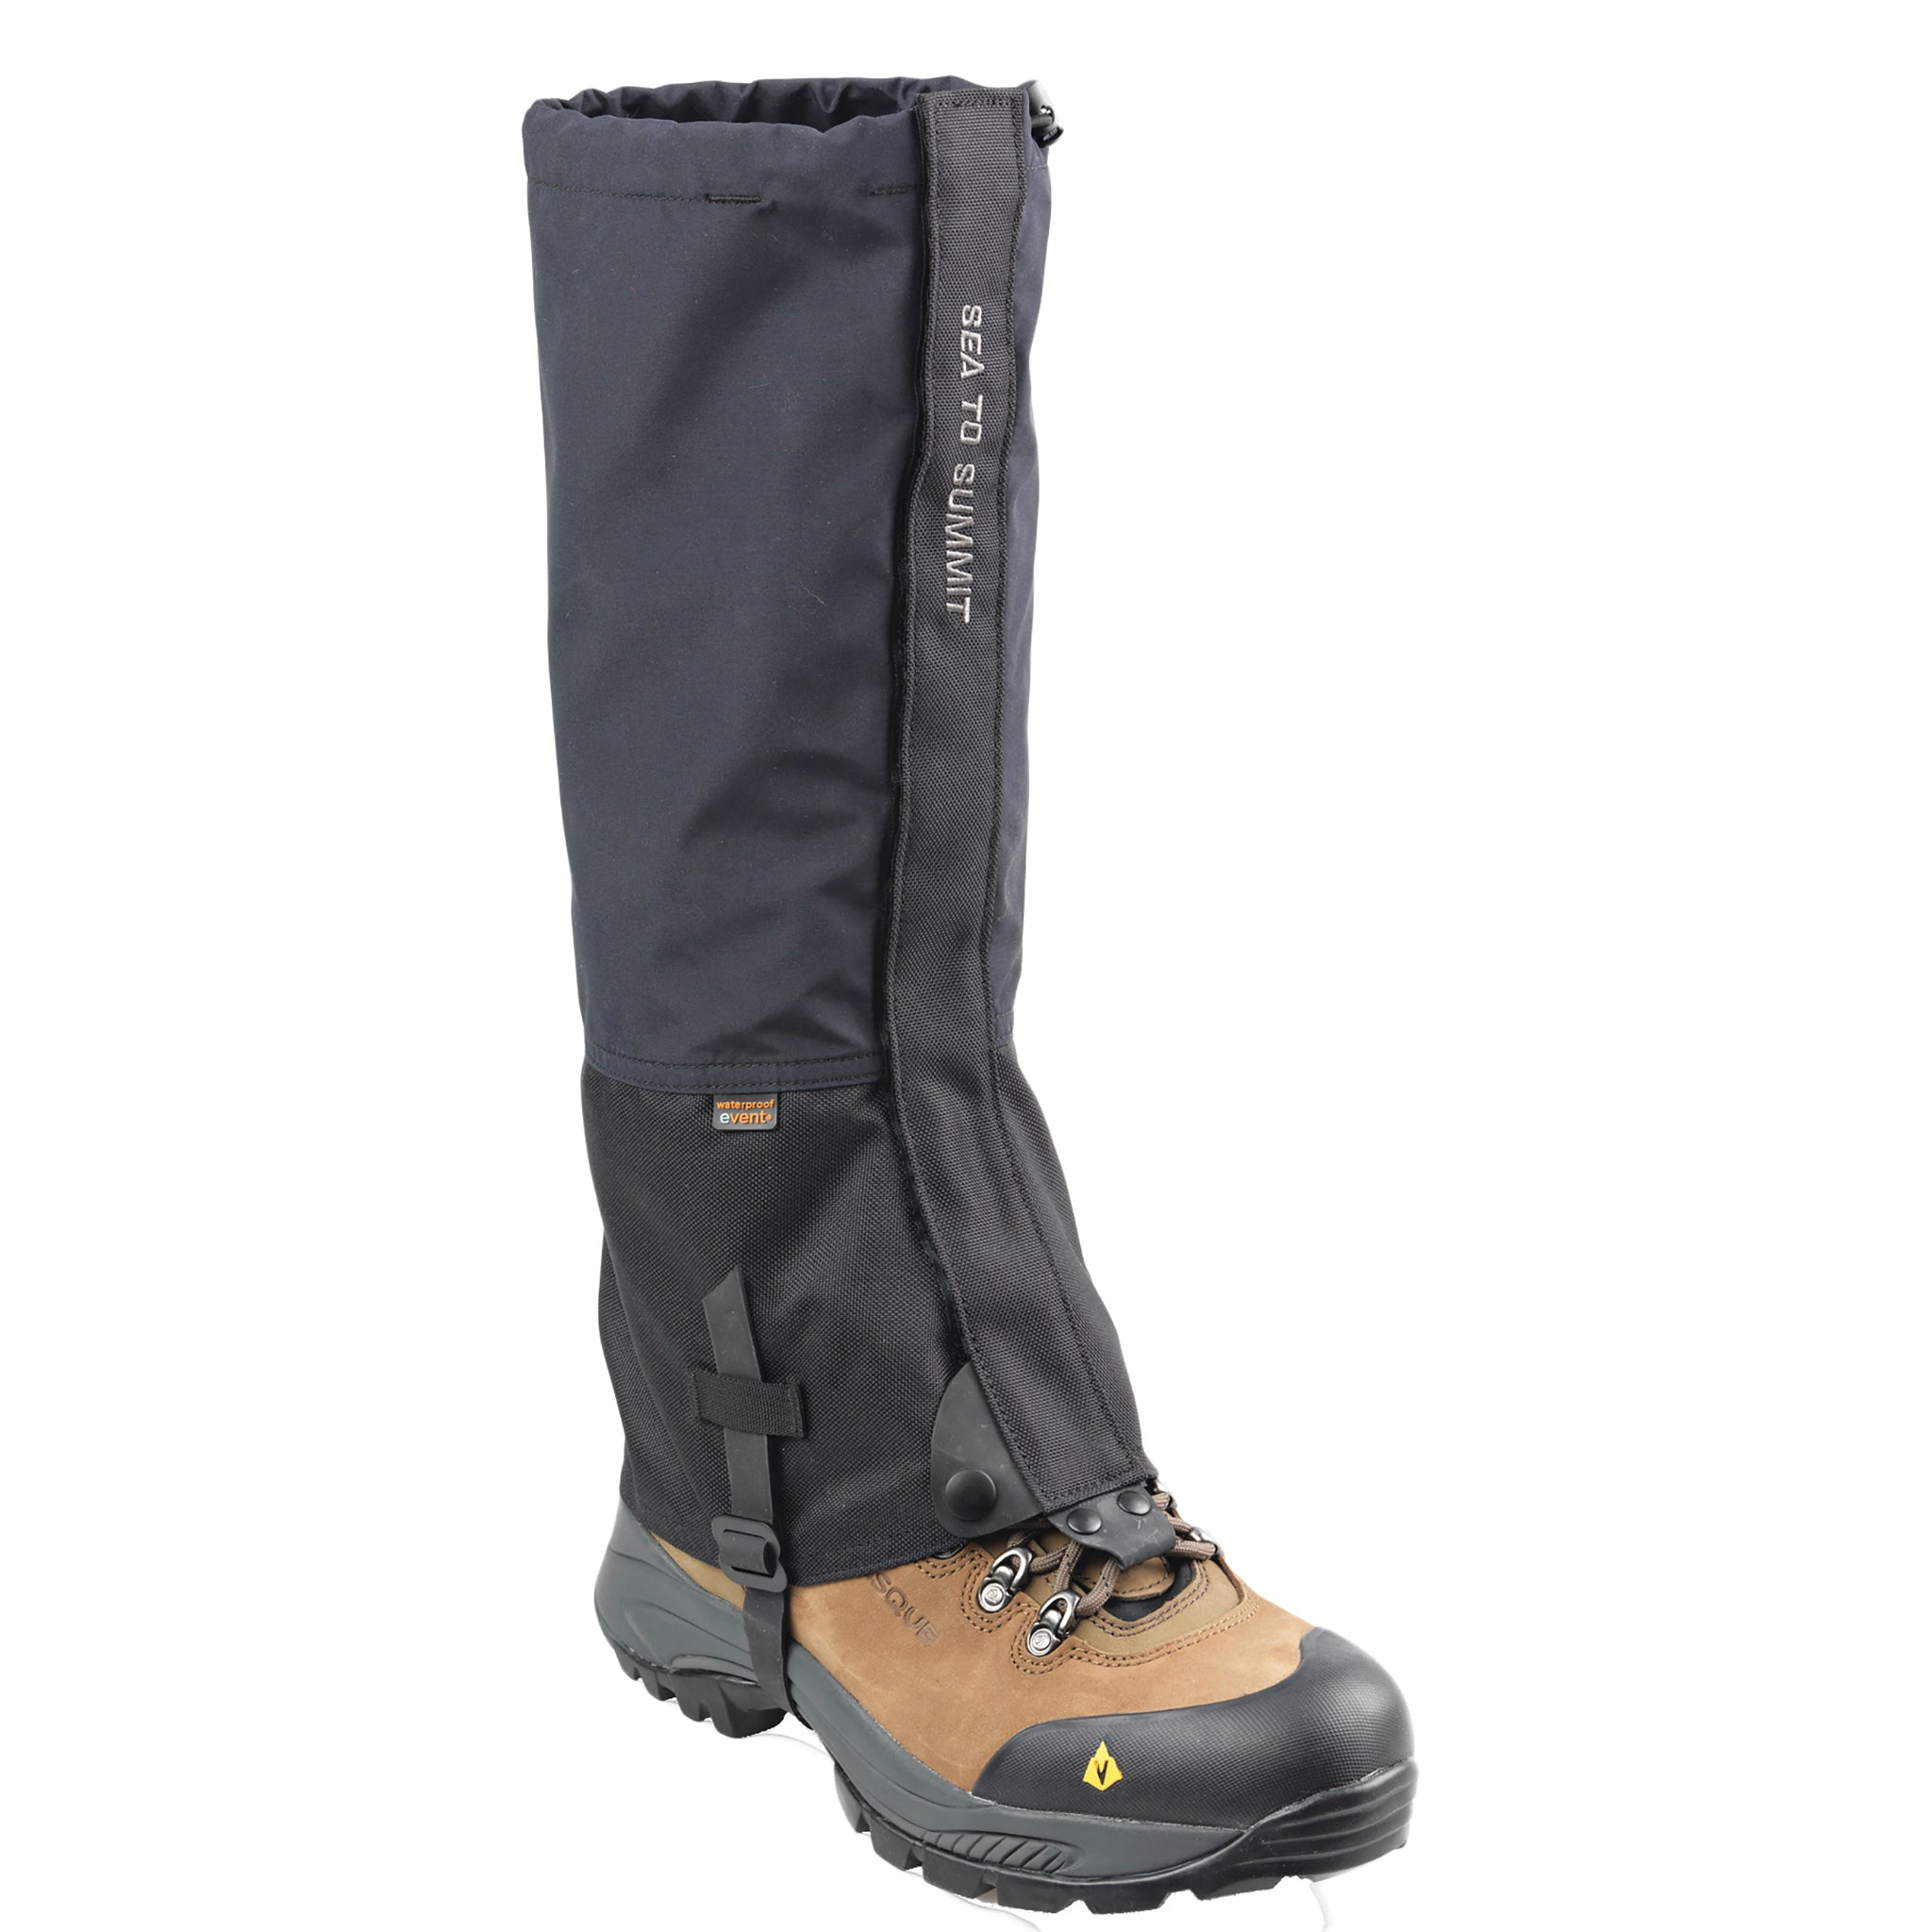 Lightweight snow hiking gaiters